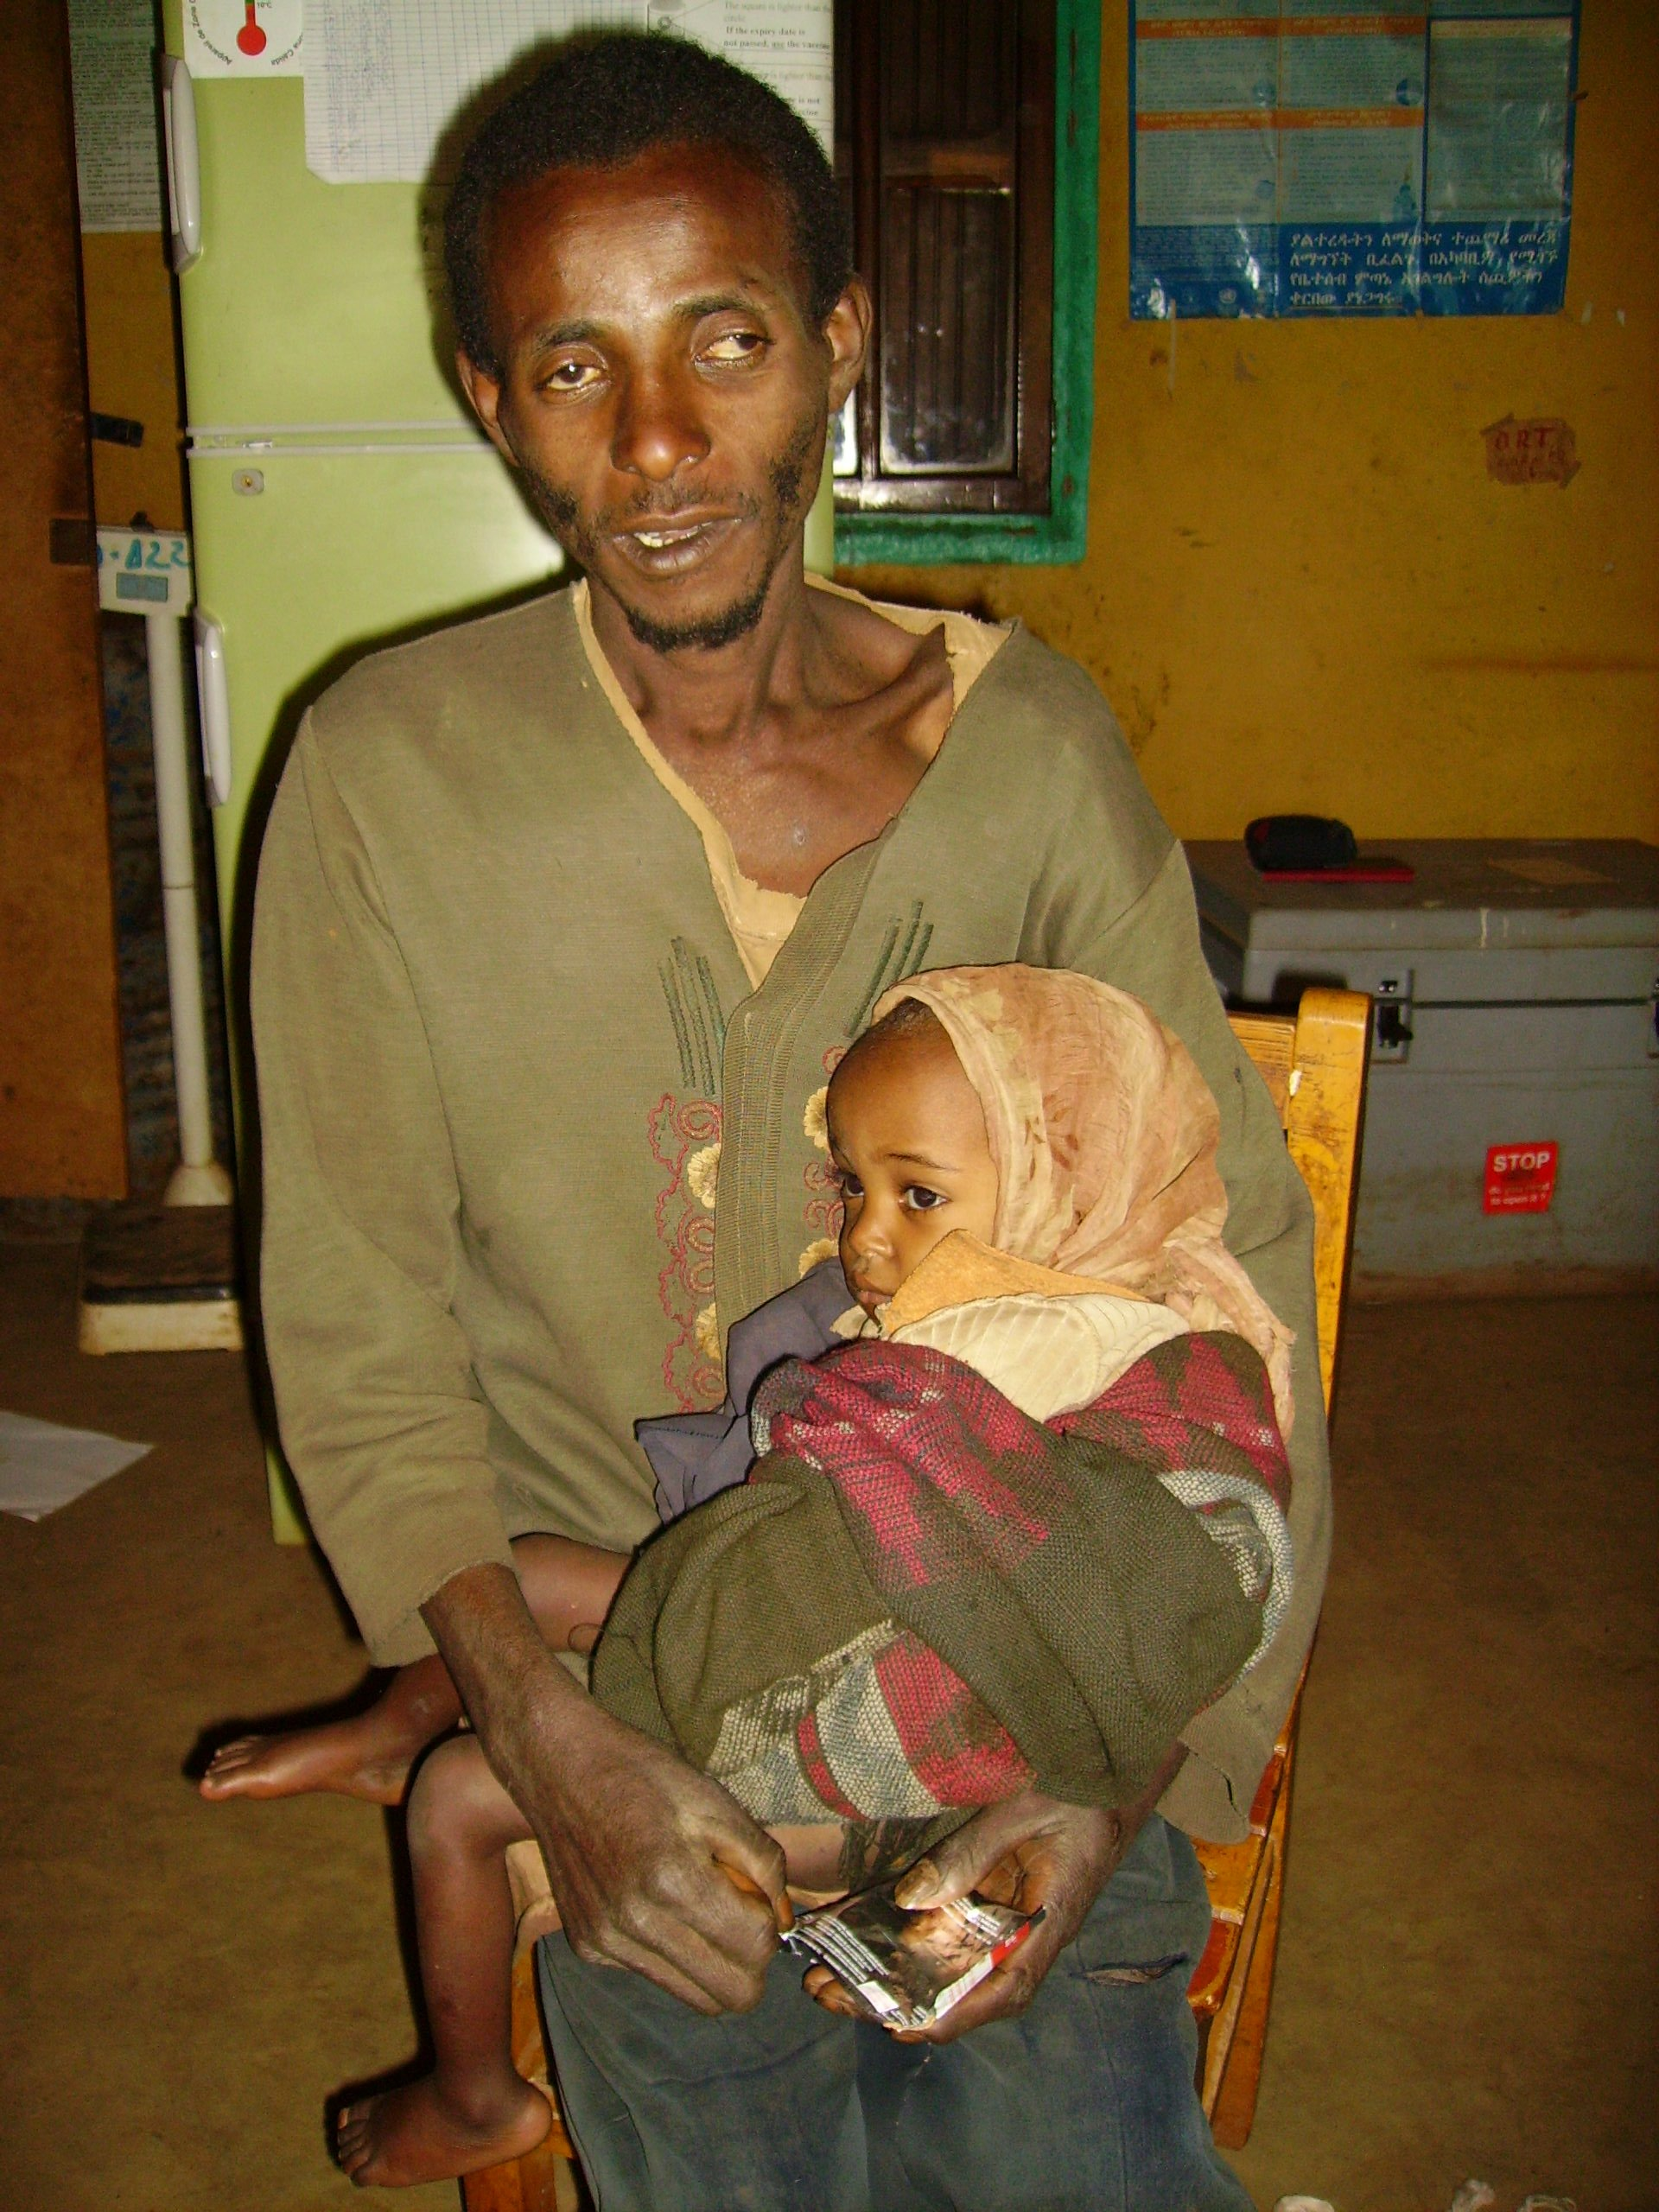 Yohannes Bate, 40, and his malnourished 3-year old son Miserach Yohannes awaiting treatment at Girara therapeutic feeding centre near Badessa, Wolayita district.